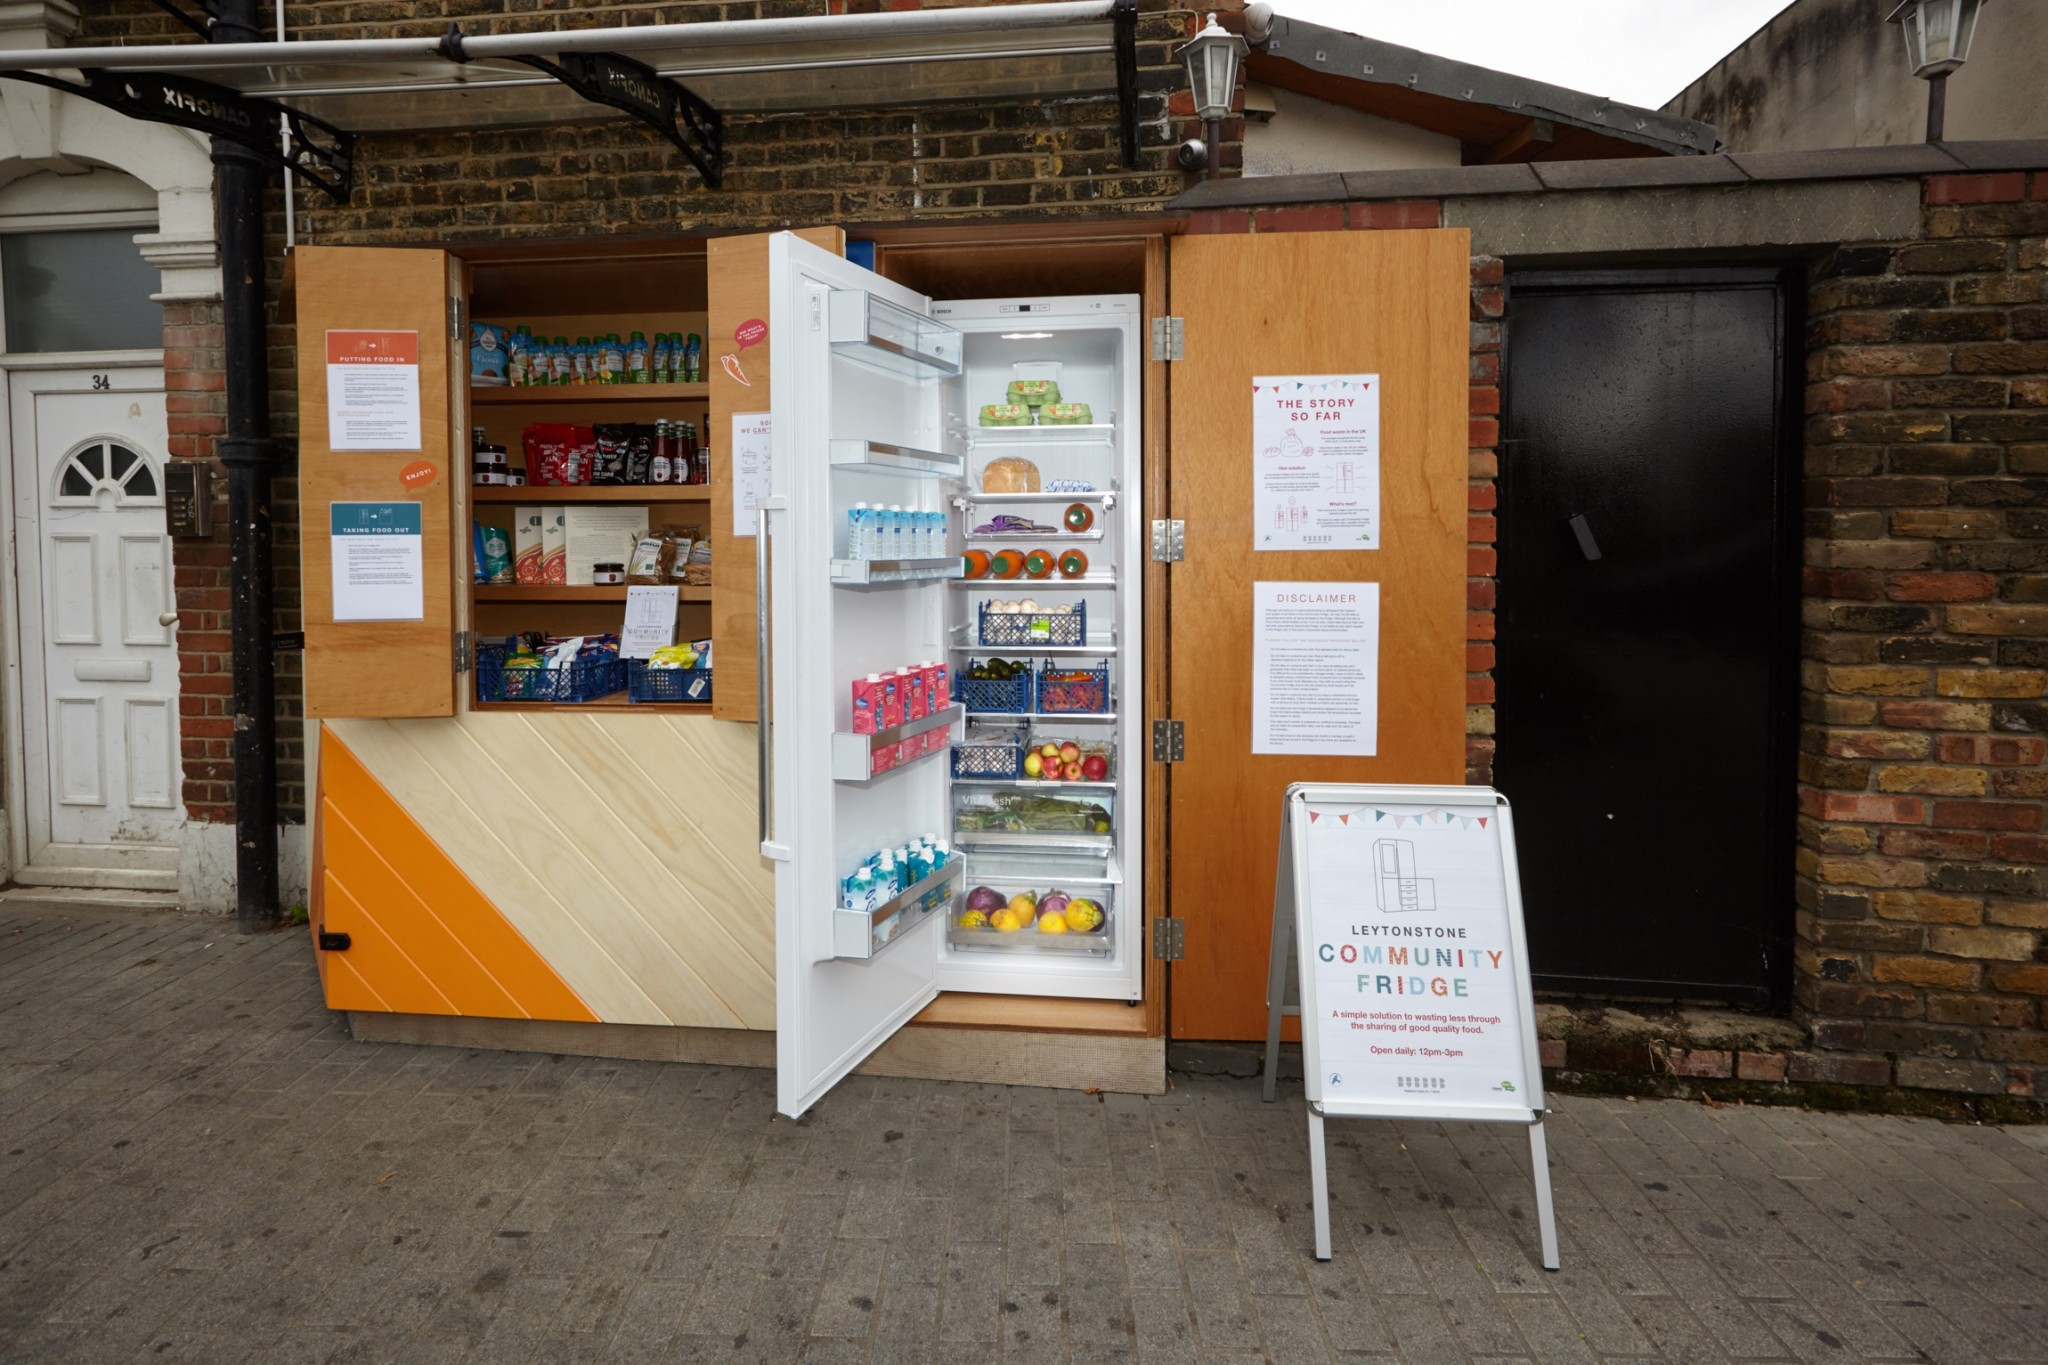 Leytonstone Community Fridge 1